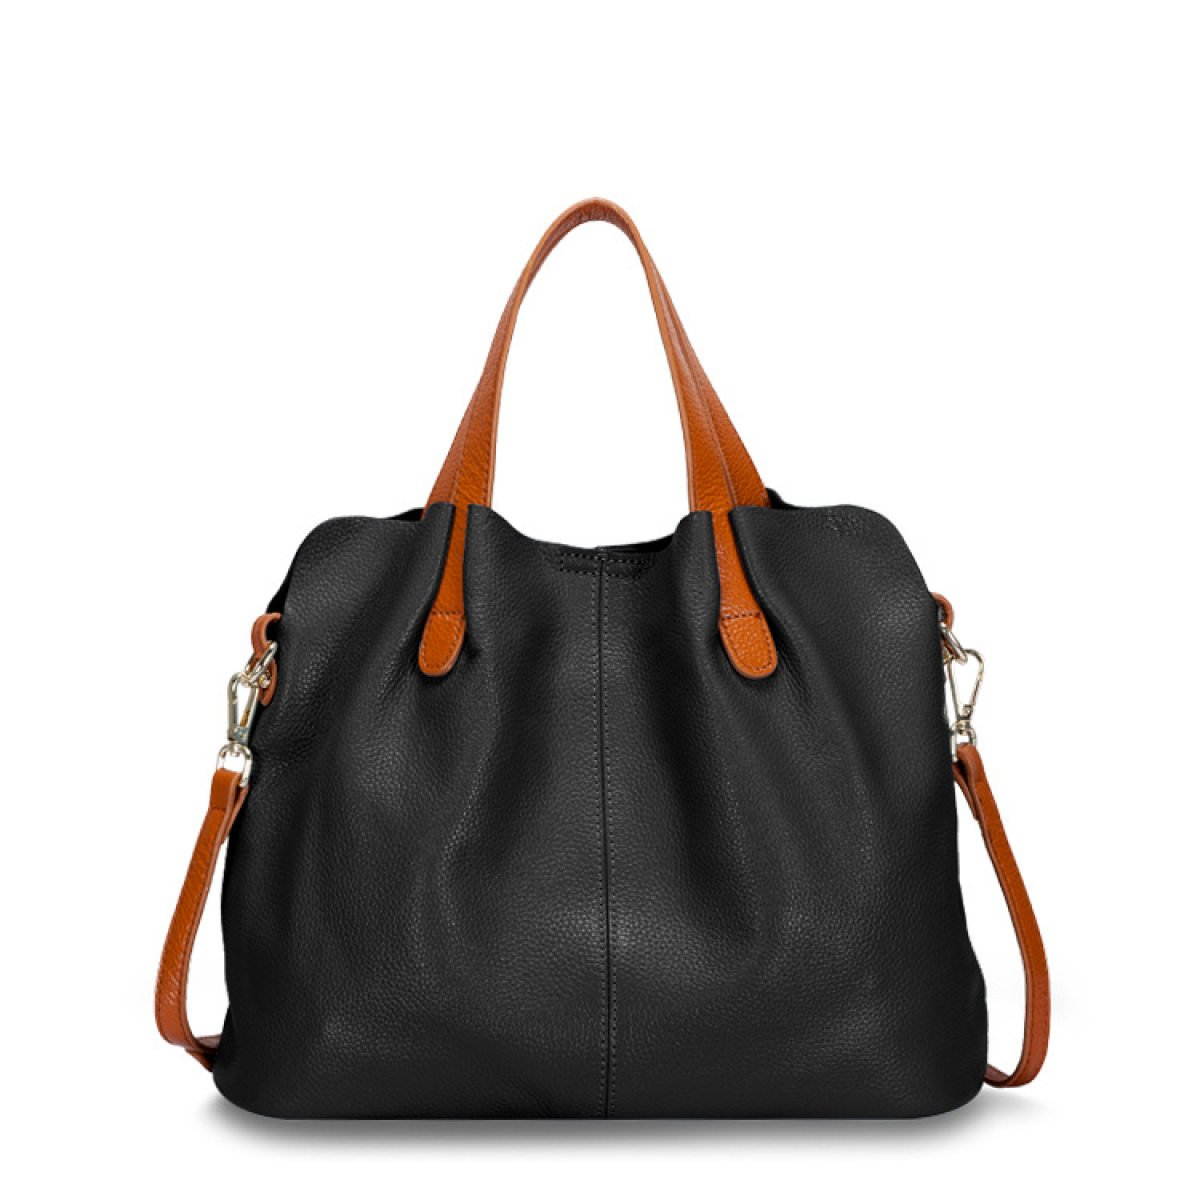 WU ZHI Lady In Pelle In Pelle Goffrata Borsa A Tracolla Messenger Bag A Mano